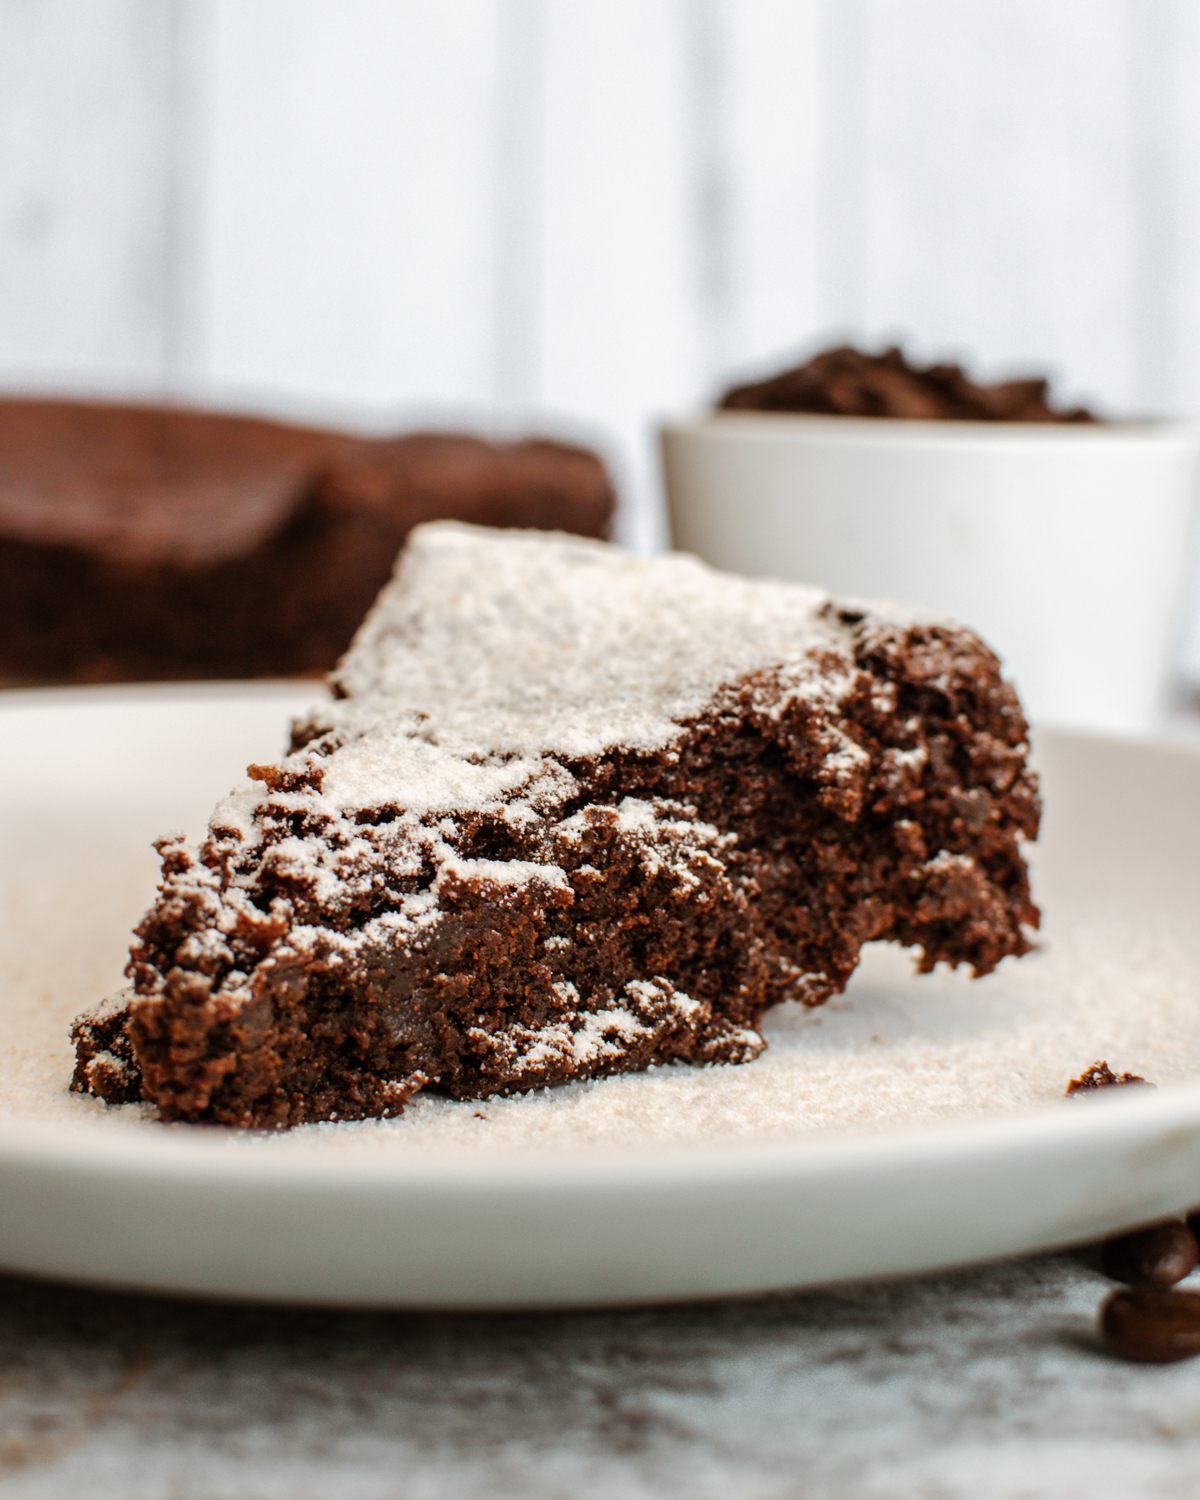 Flourless Chocolate Cake: A Delicious & Healthier Alternative for Dessert